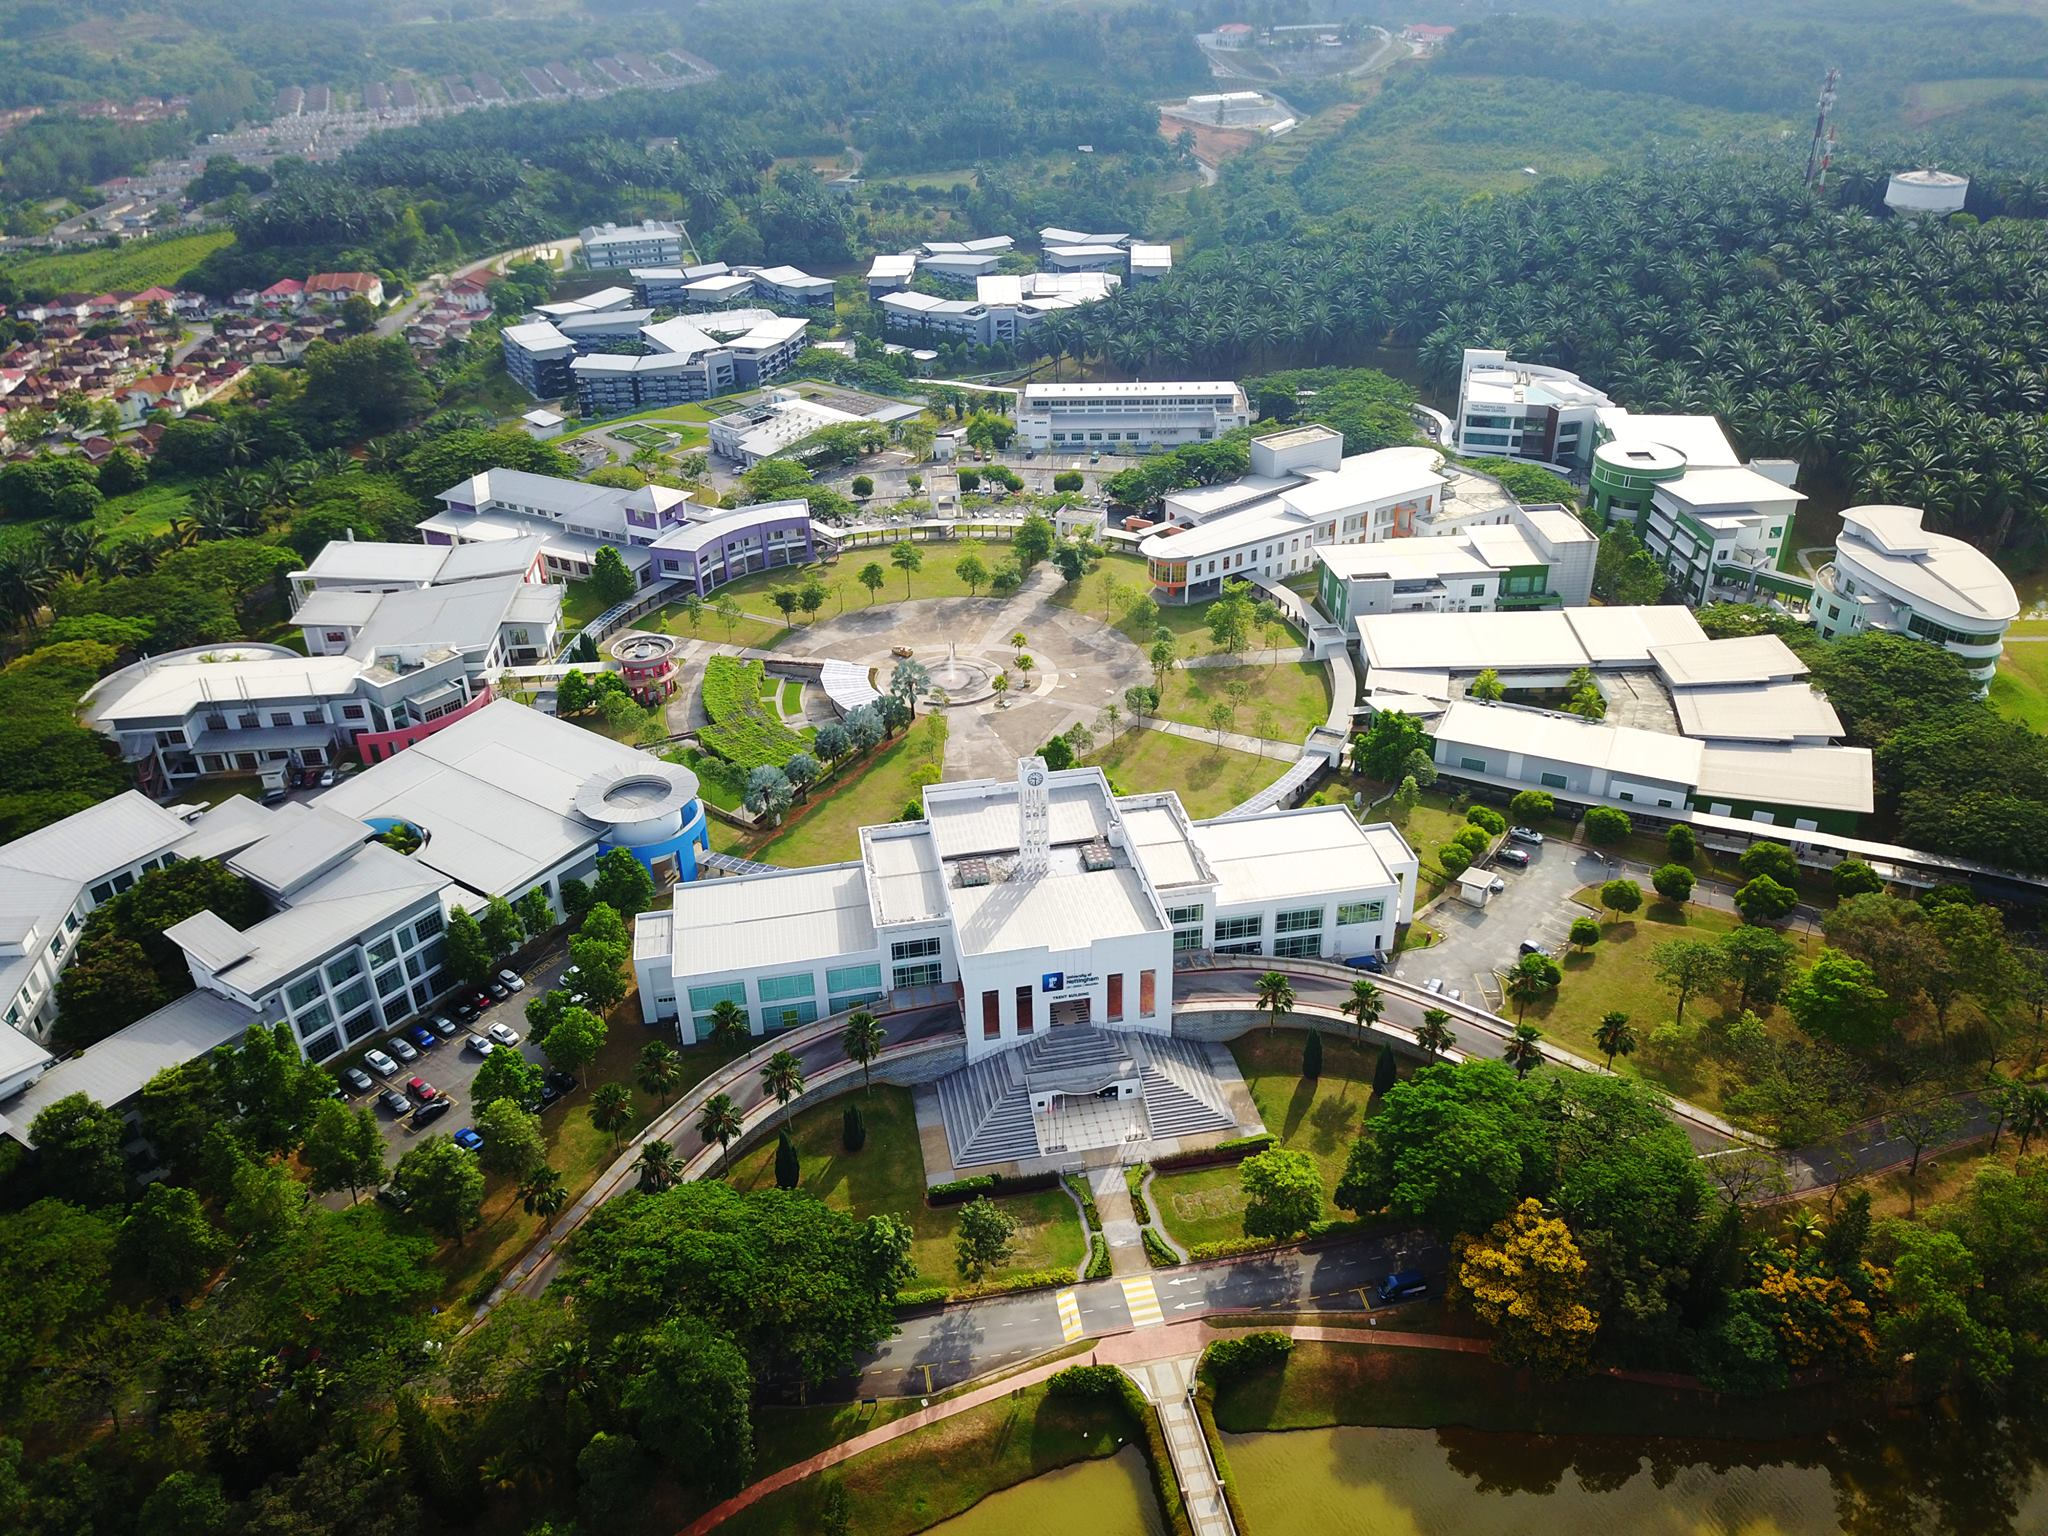 Image from University of Nottingham Malaysia Campus / Facebook